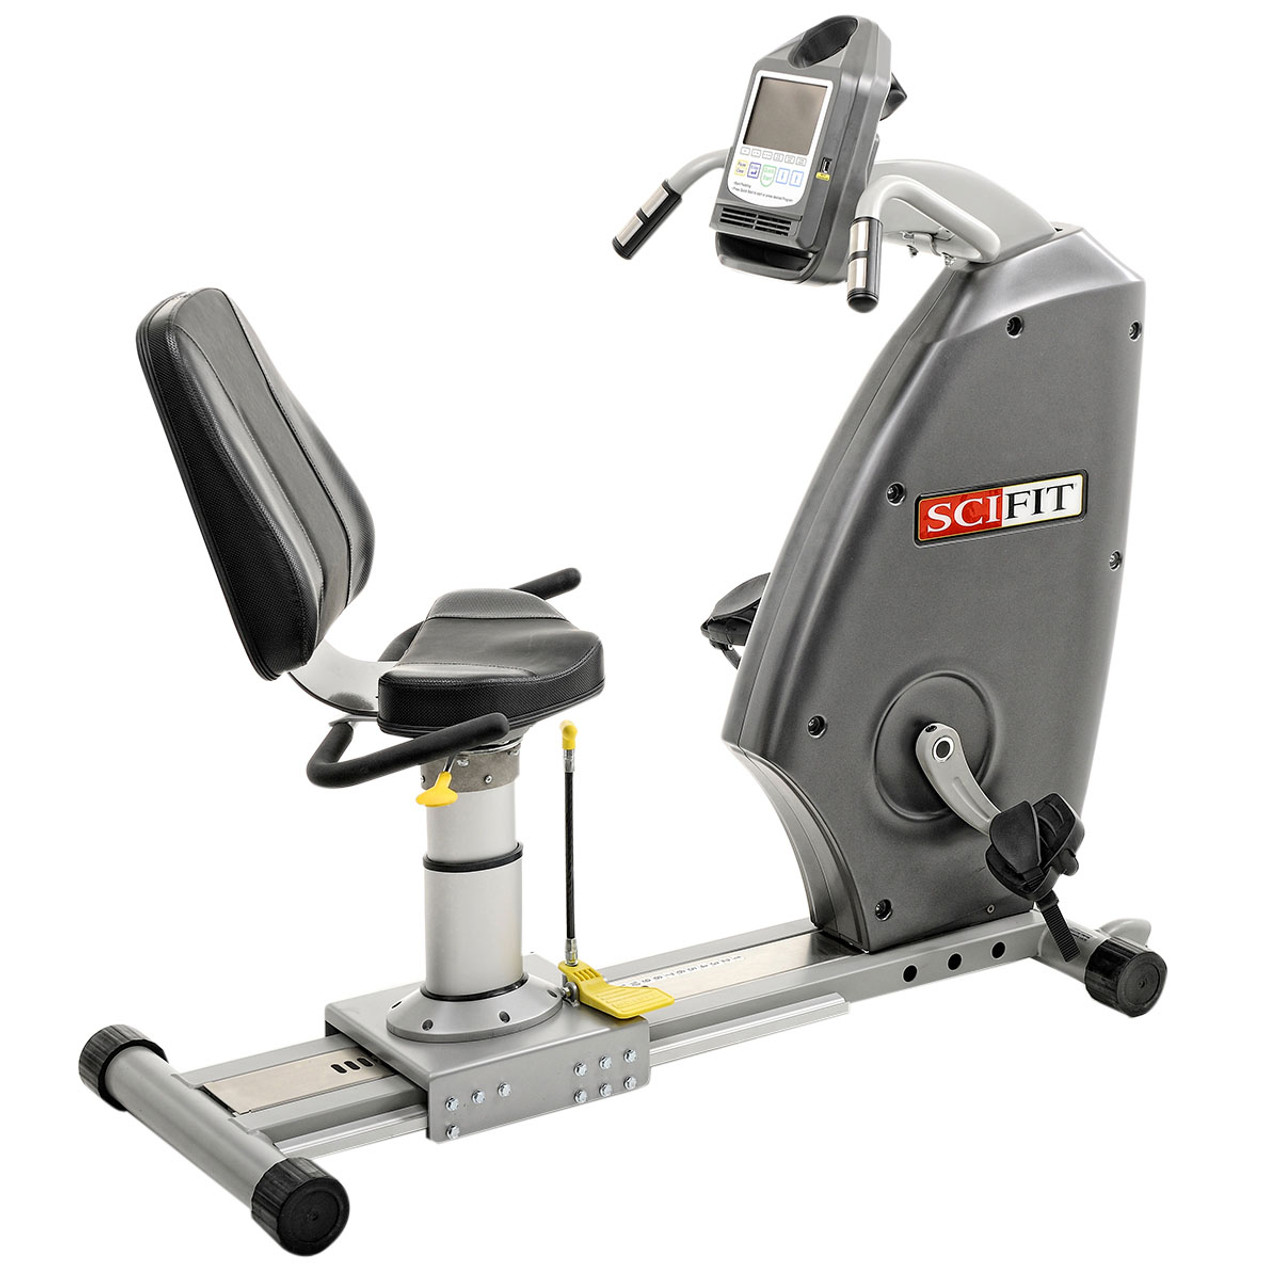 SciFit Recumbent Bike - Forward Only - Step Through - Standard Seat